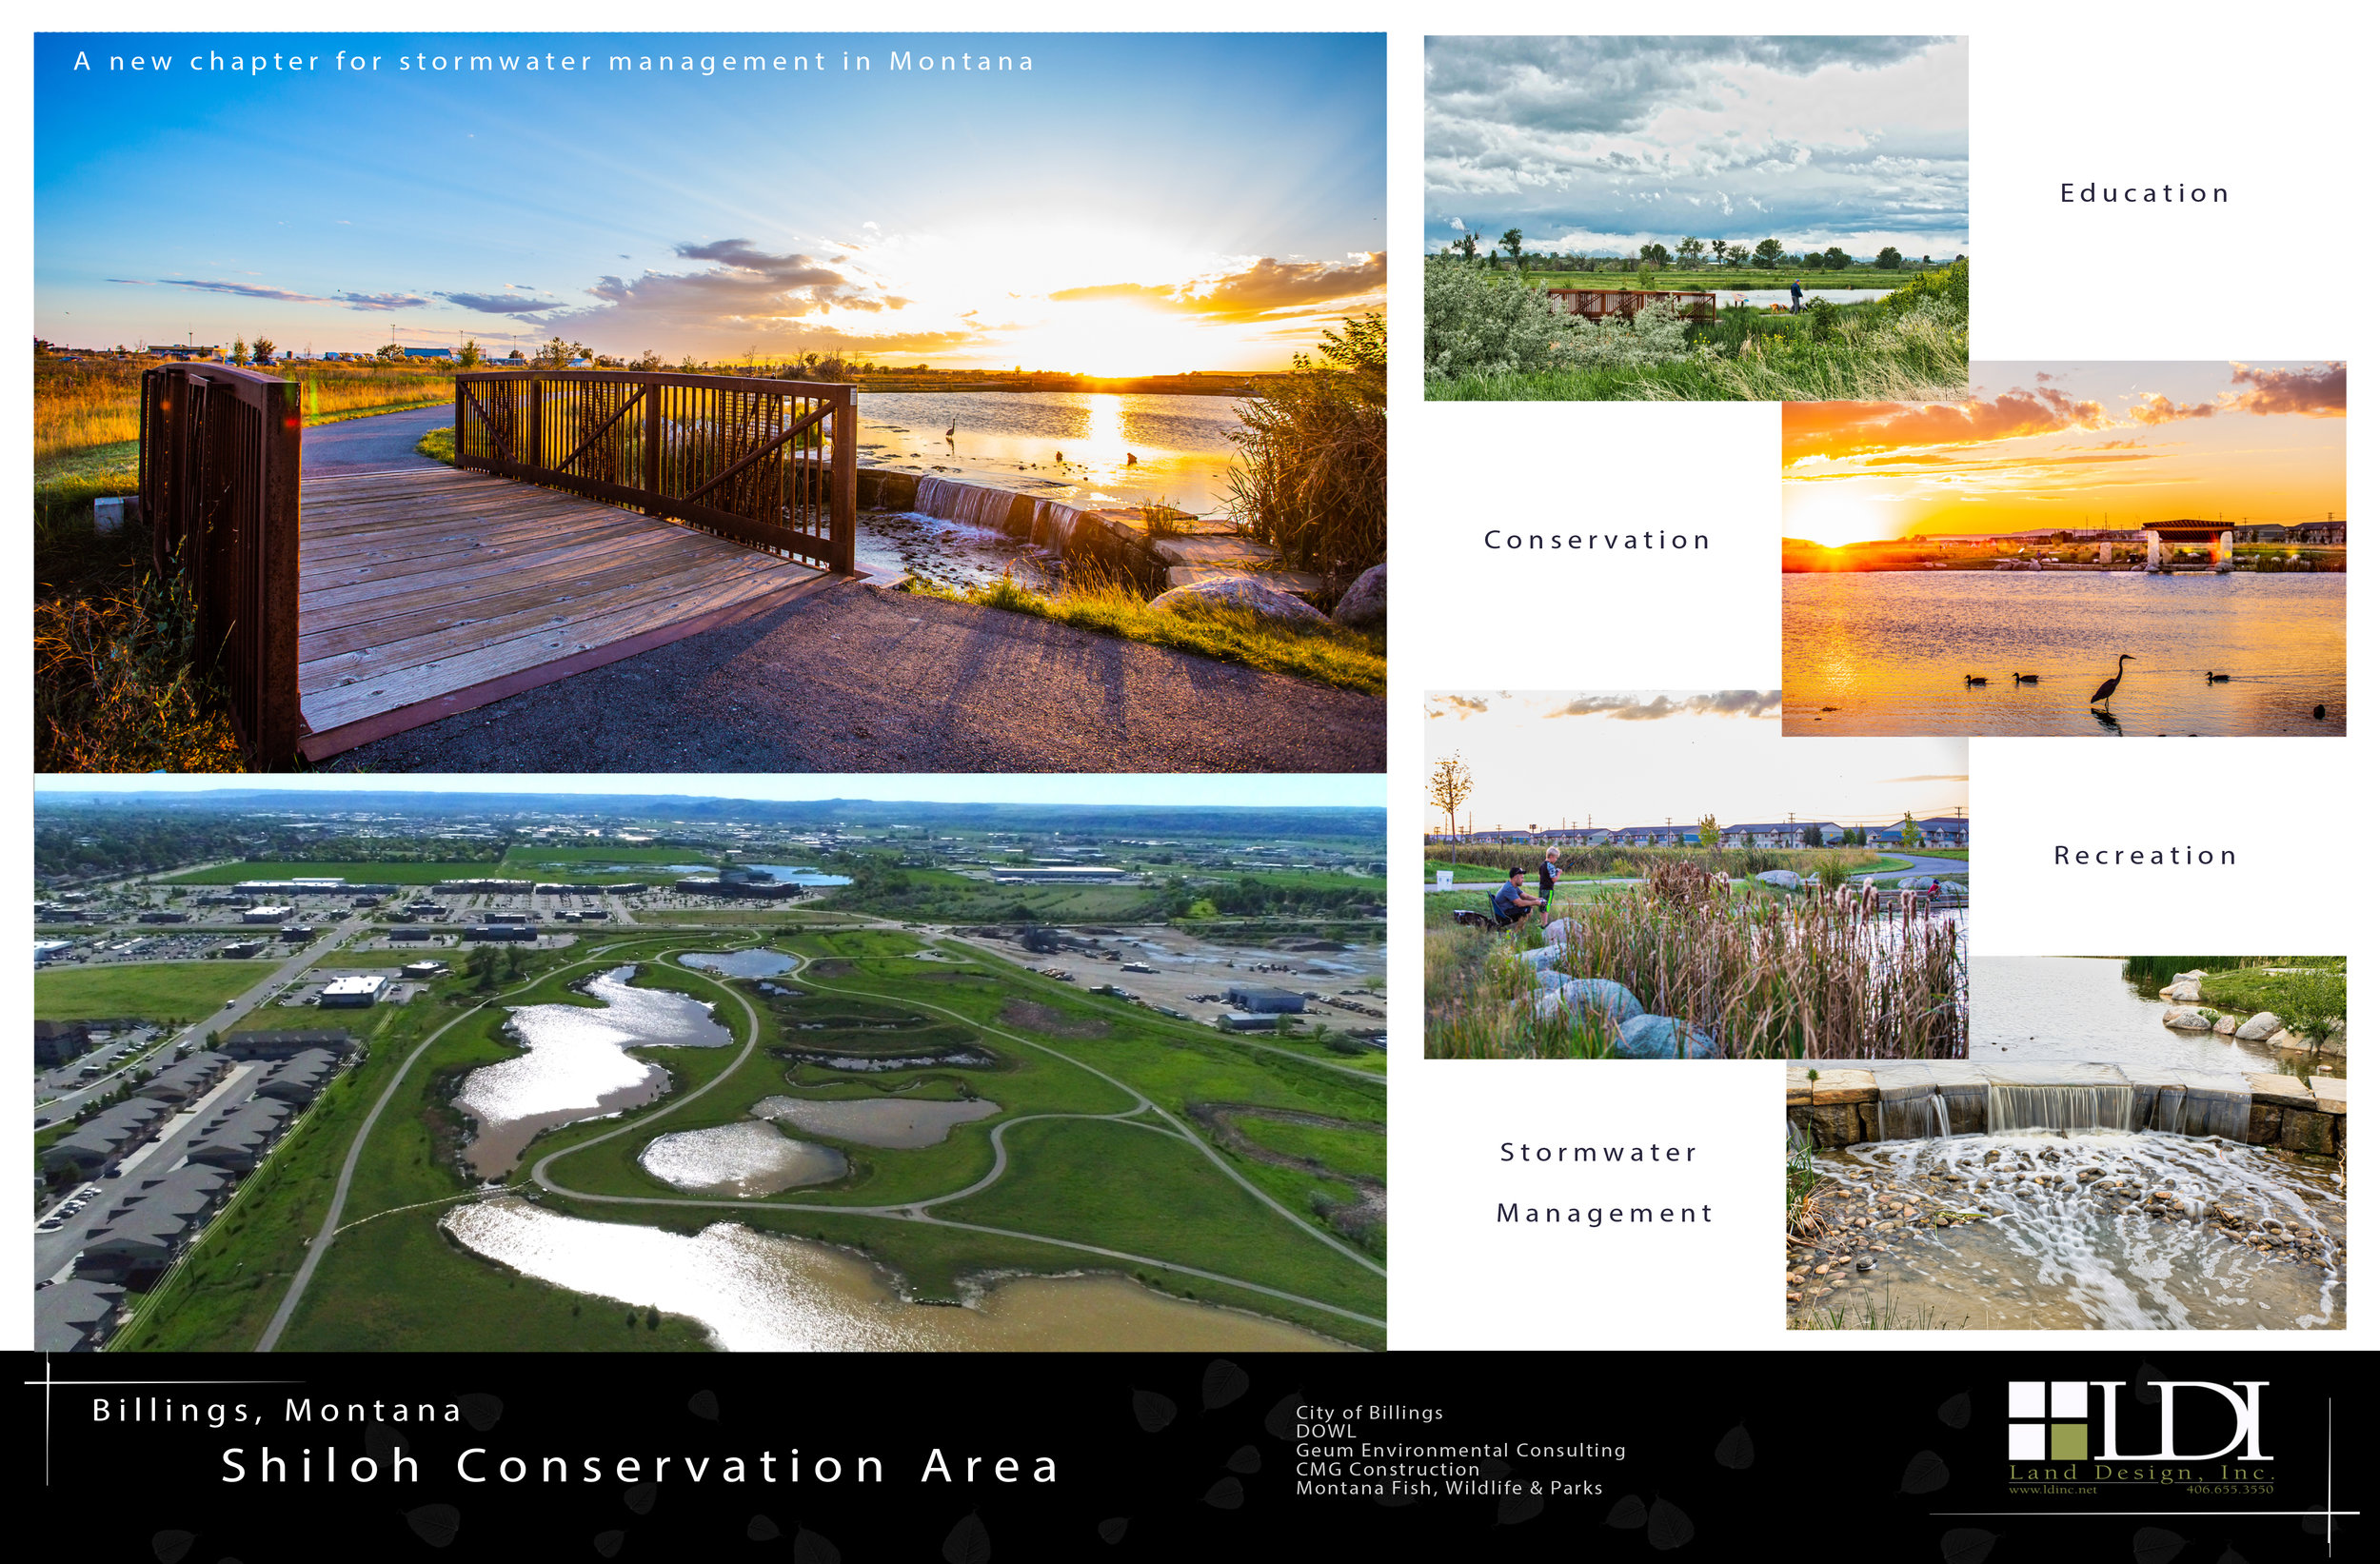 Honor Award - Land Design Inc.- Shiloh Conservation AreaGeneral Design Category